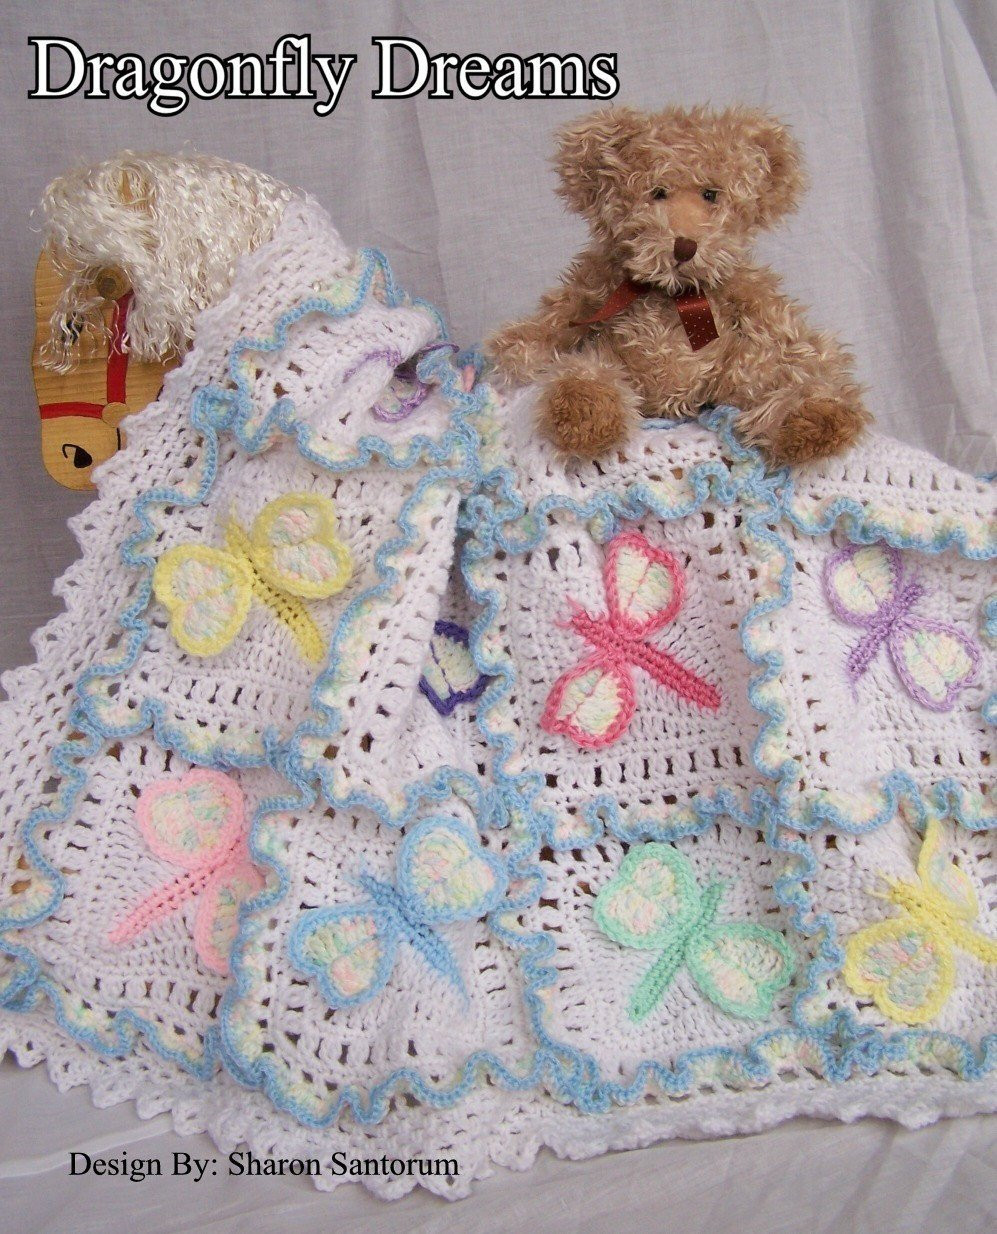 Crochet Patterns for Baby Blankets Inspirational Easy Baby Blankets to Crochet Crochet — Learn How to Crochet Of Great 50 Photos Crochet Patterns for Baby Blankets